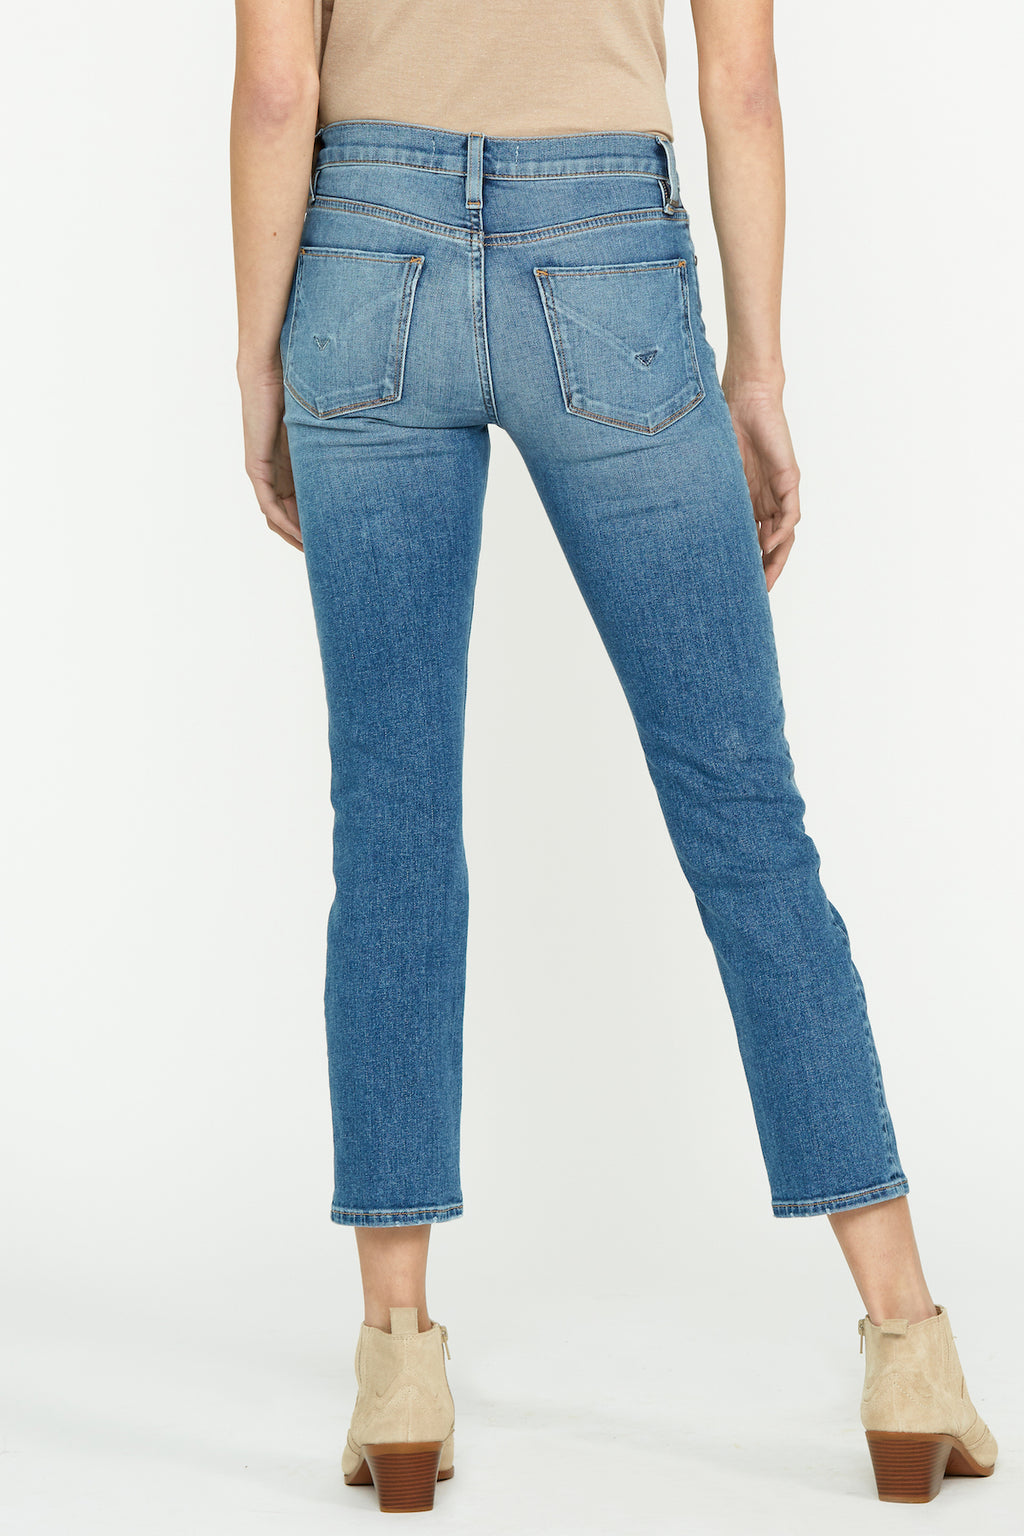 Nico Mid-Rise Straight Ankle Jean - hudsonjeans